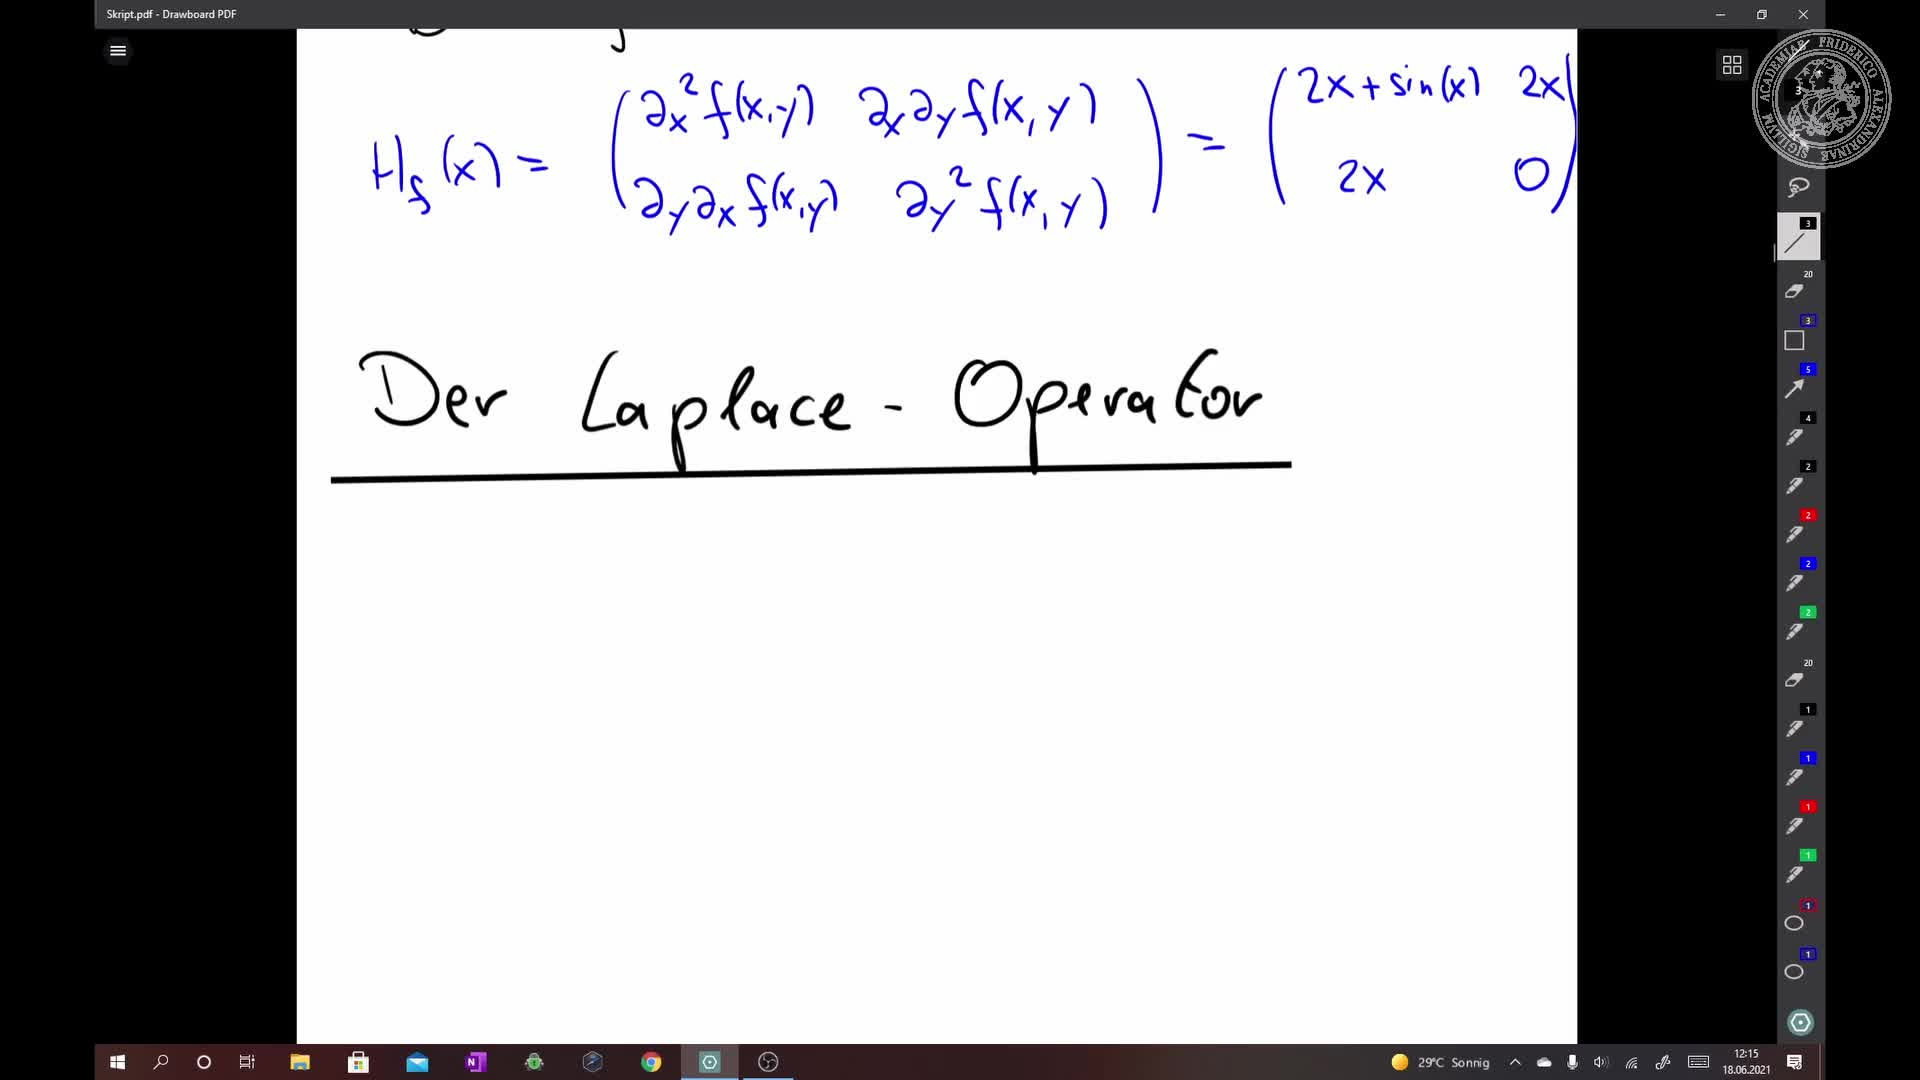 Der Laplace-Operator preview image